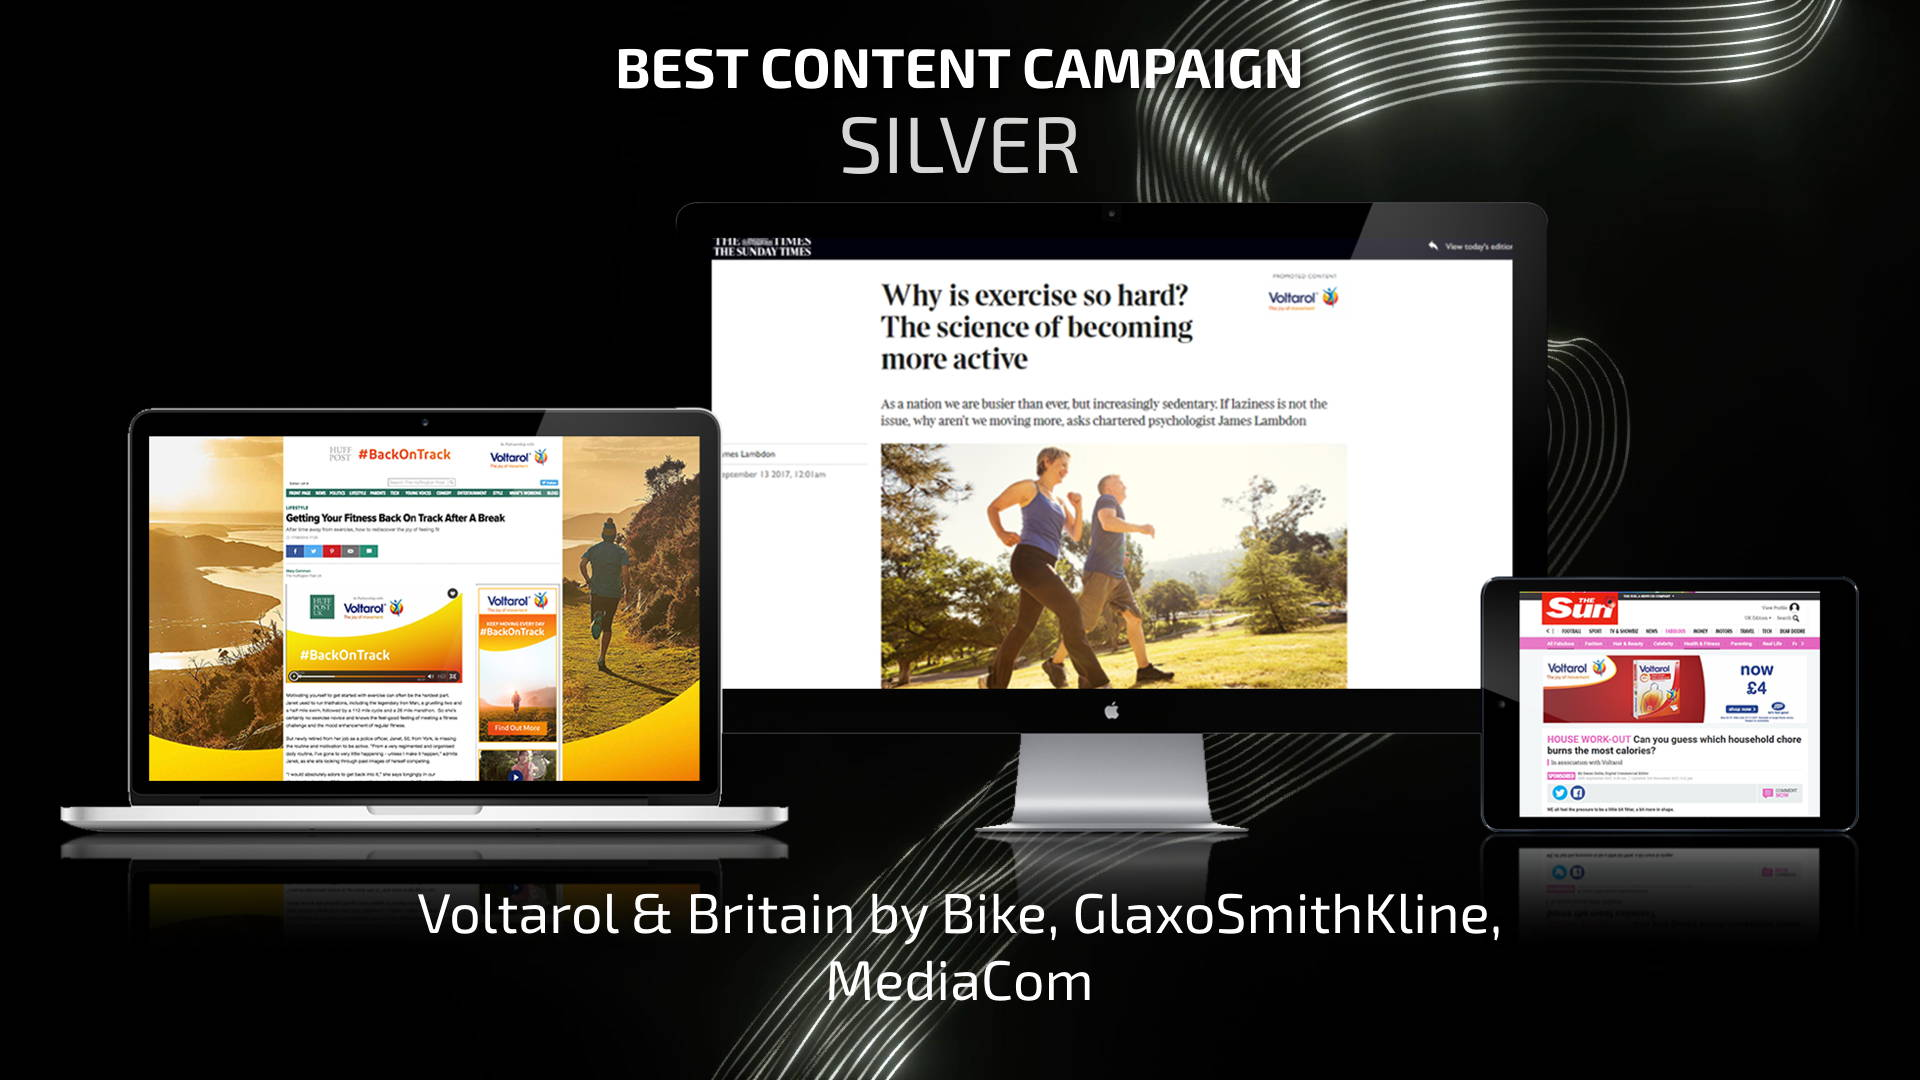 Best Content Campaign - Silver